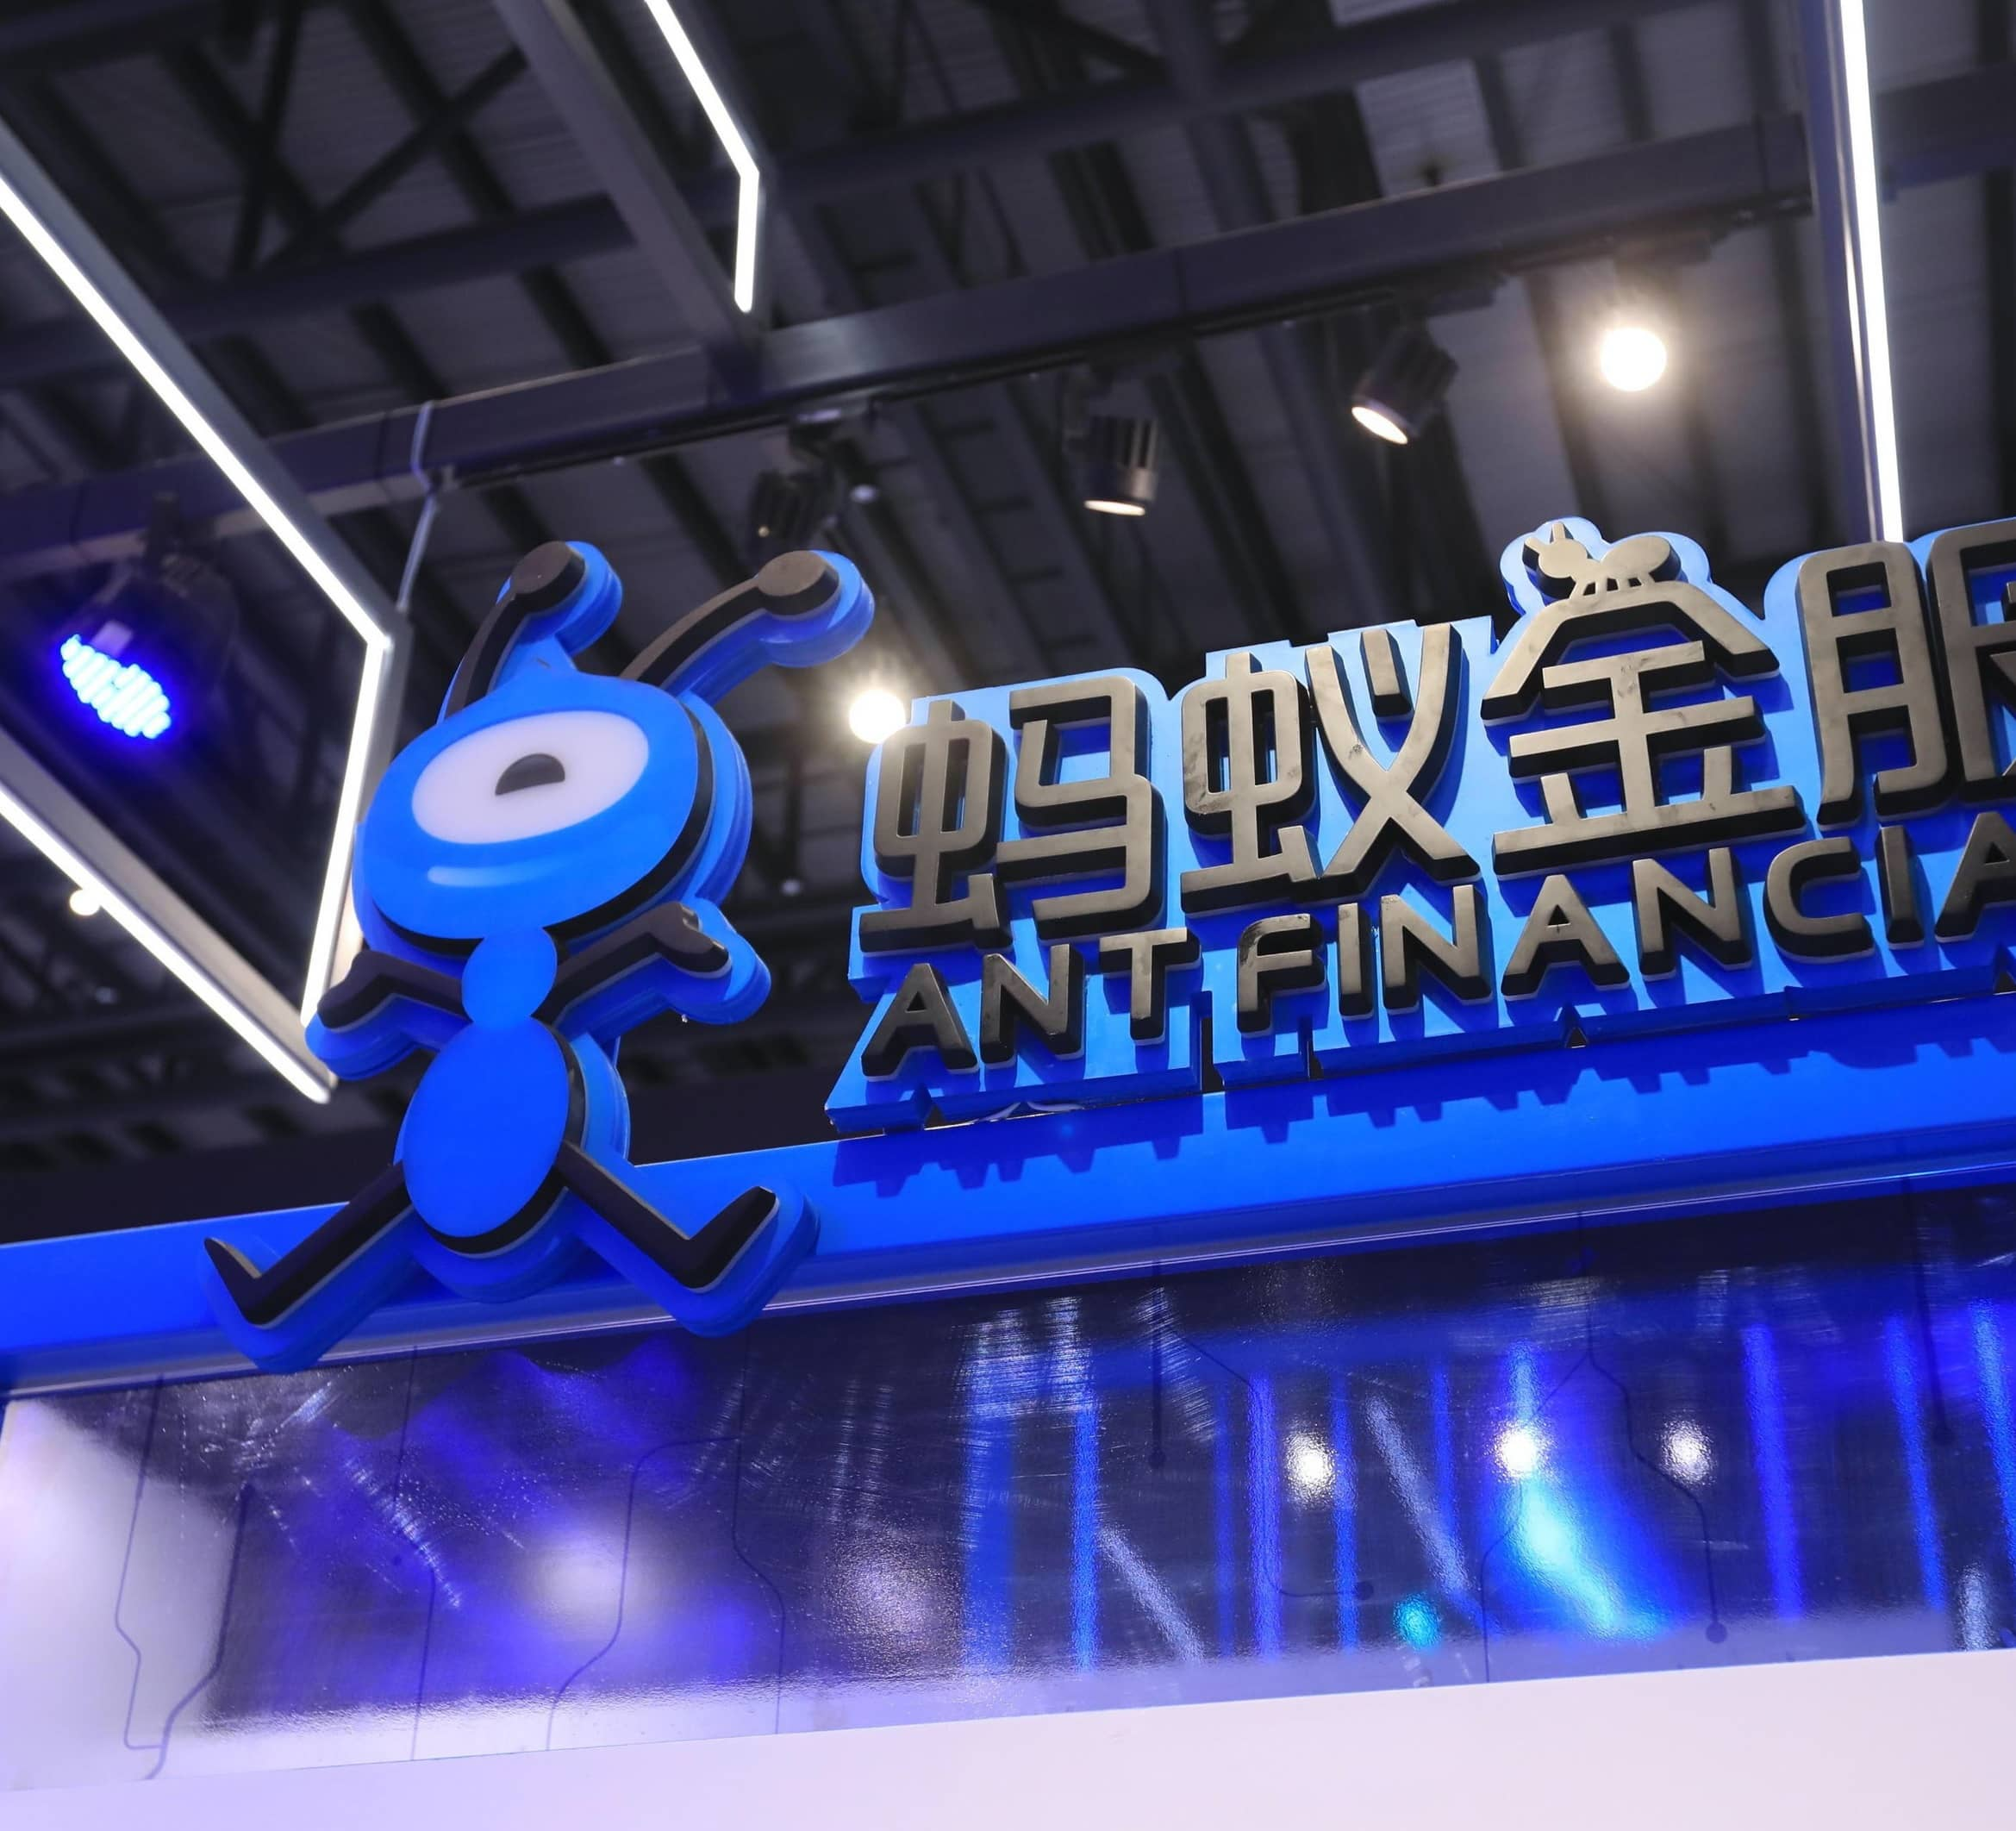 Alibaba-Backed Ant Group To Go Public in Shanghai, Hong Kong